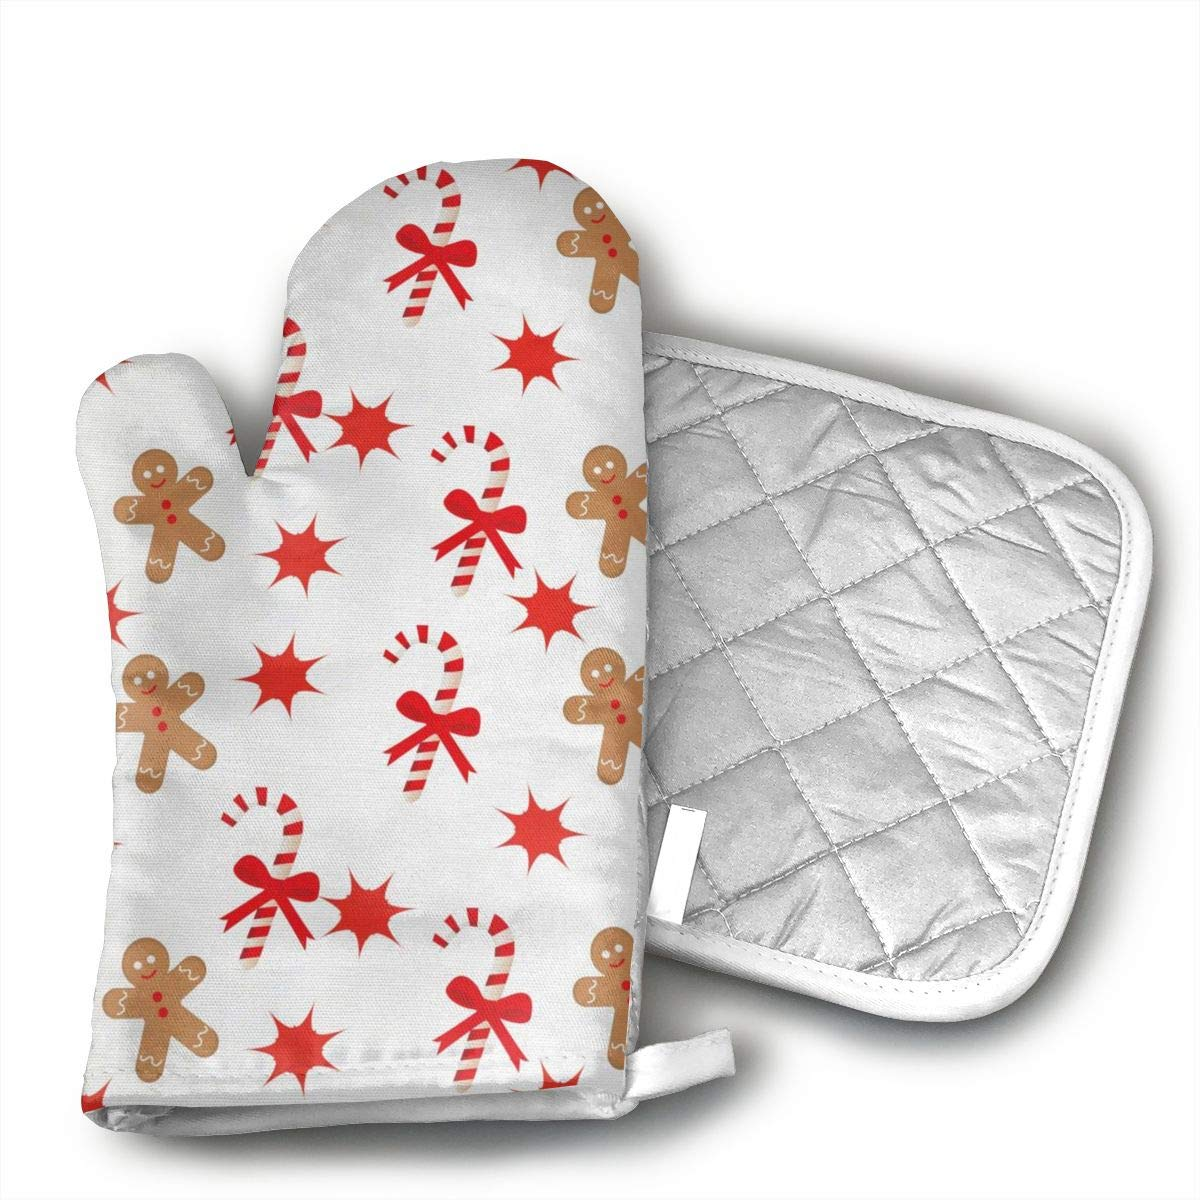 not Oven Mitts and Potholders Bow Tie Red Star Gingerbread Man Candy Cane Pattern Non-Slip Grip Heat Resistant Oven Gloves BBQ Cooking Baking Grilling